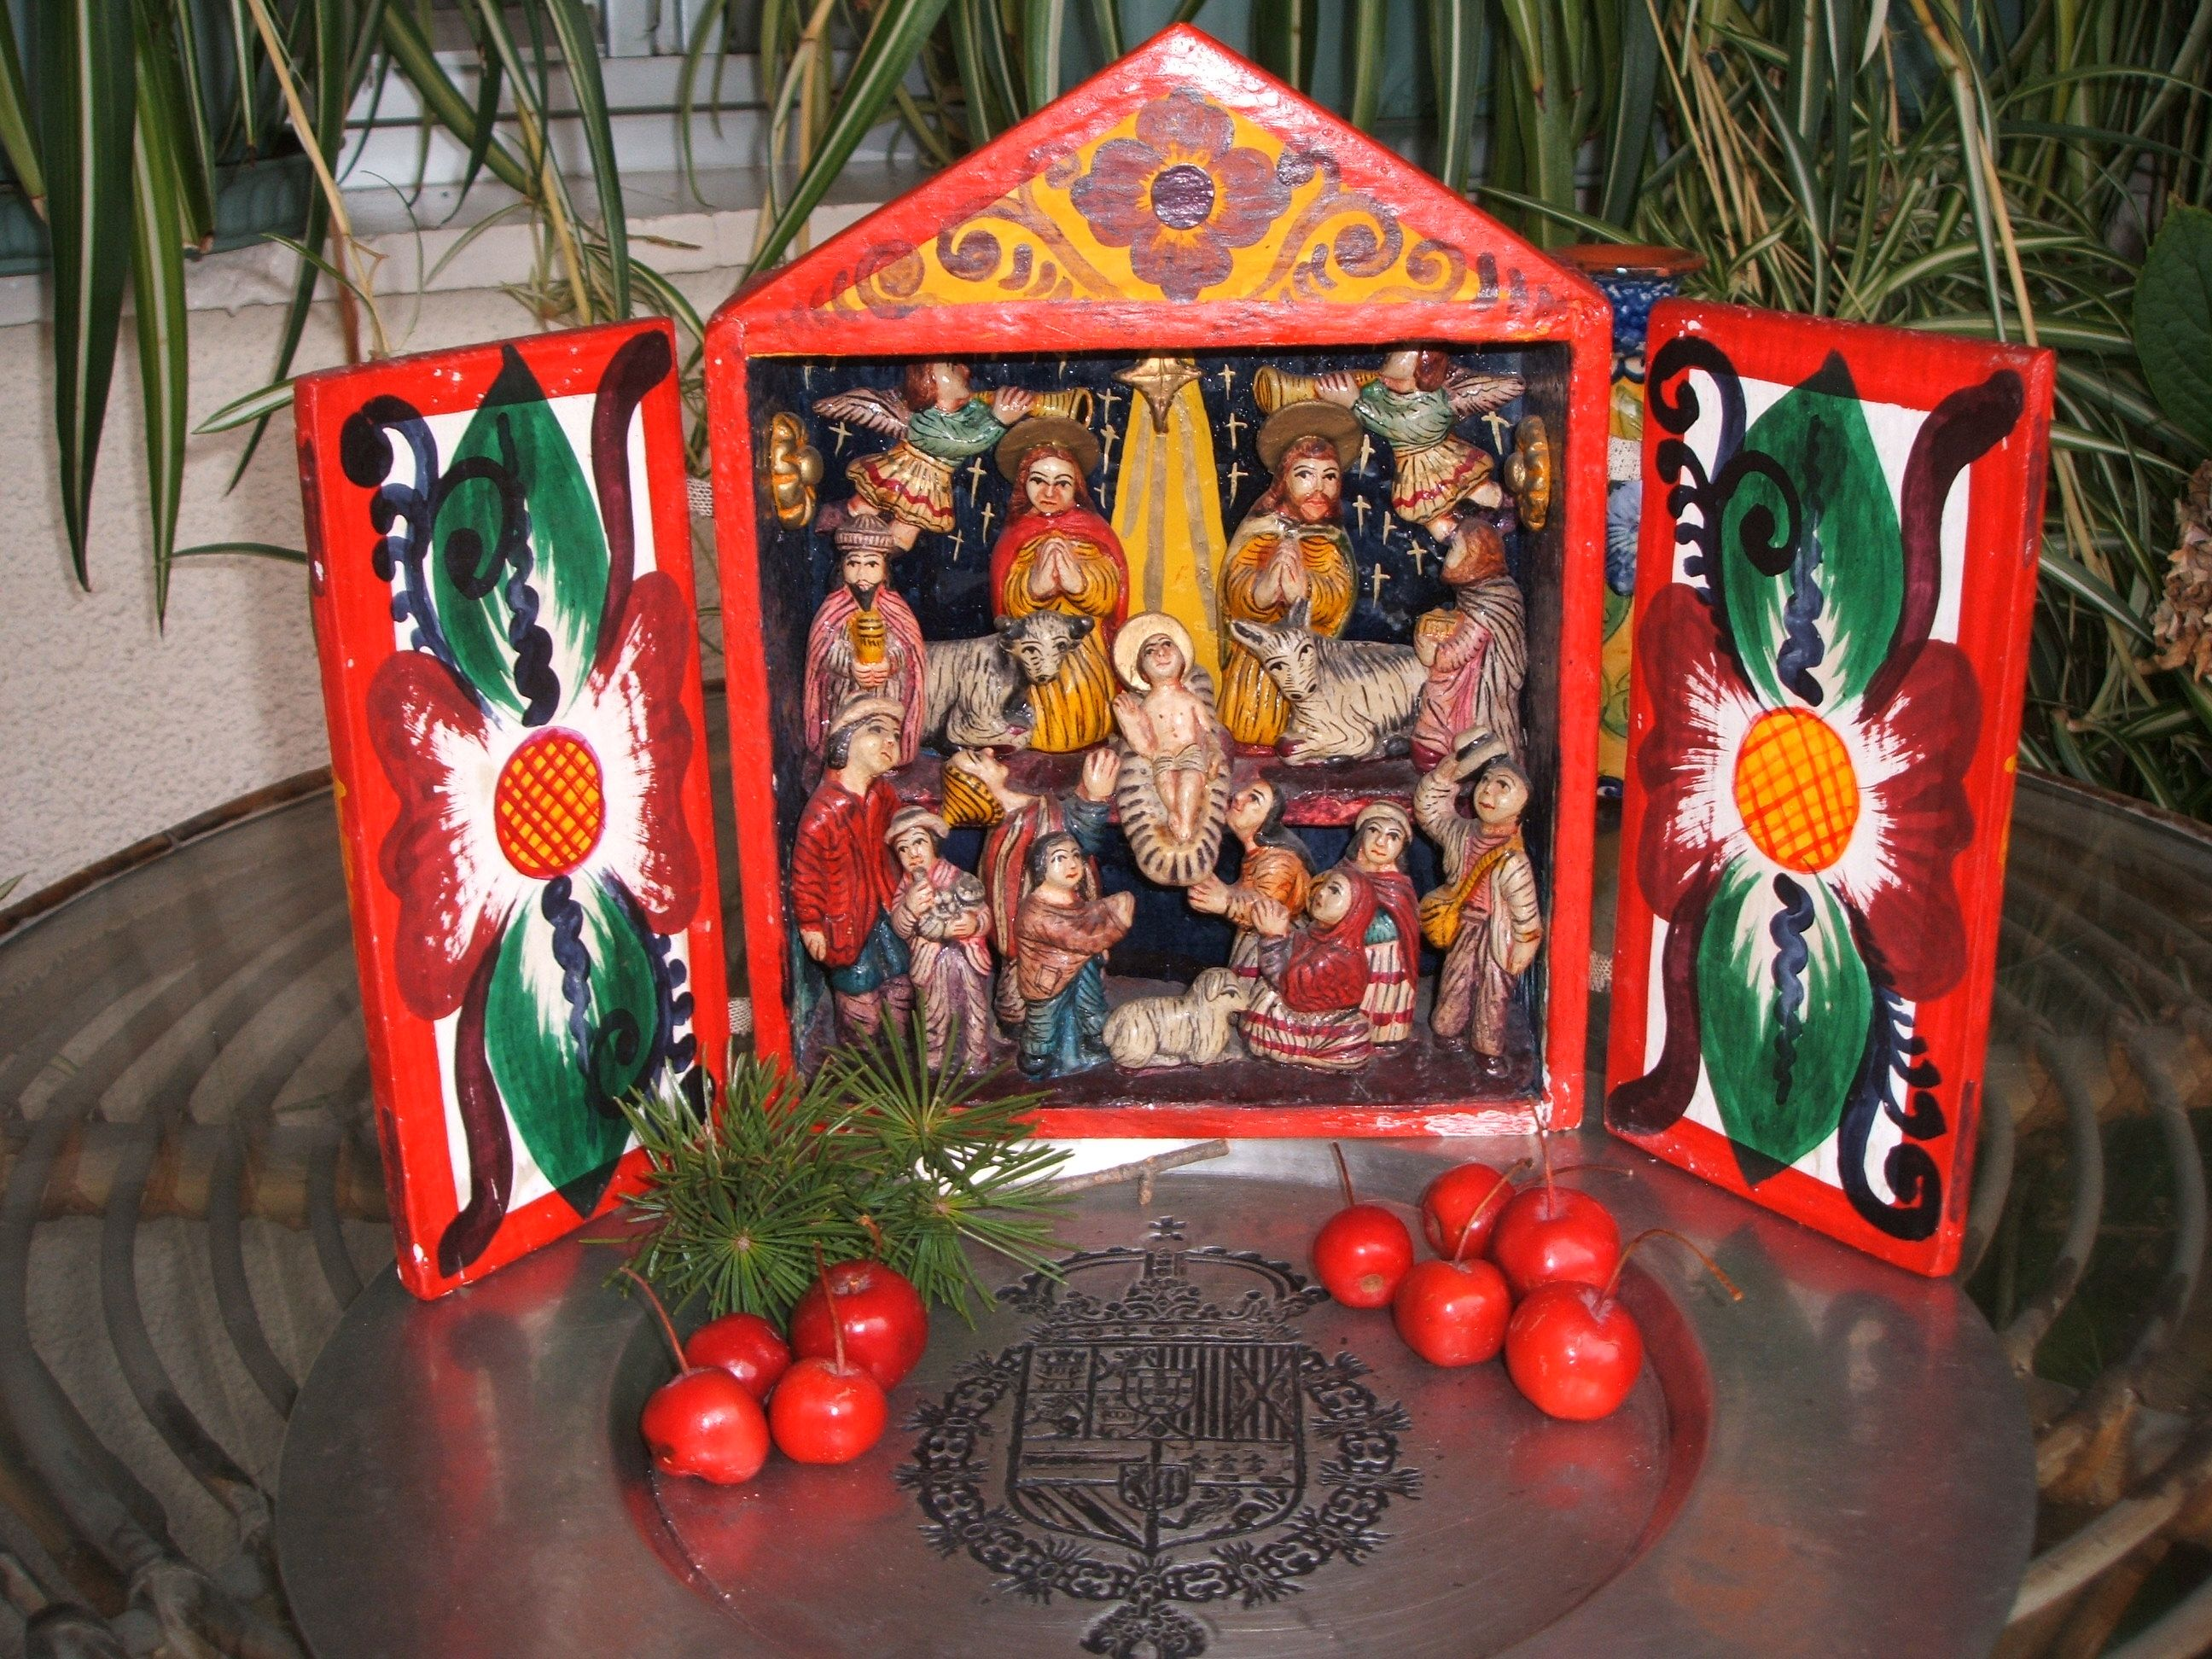 Christmas in Peru | Peru | Pinterest | Peru and Christmas traditions